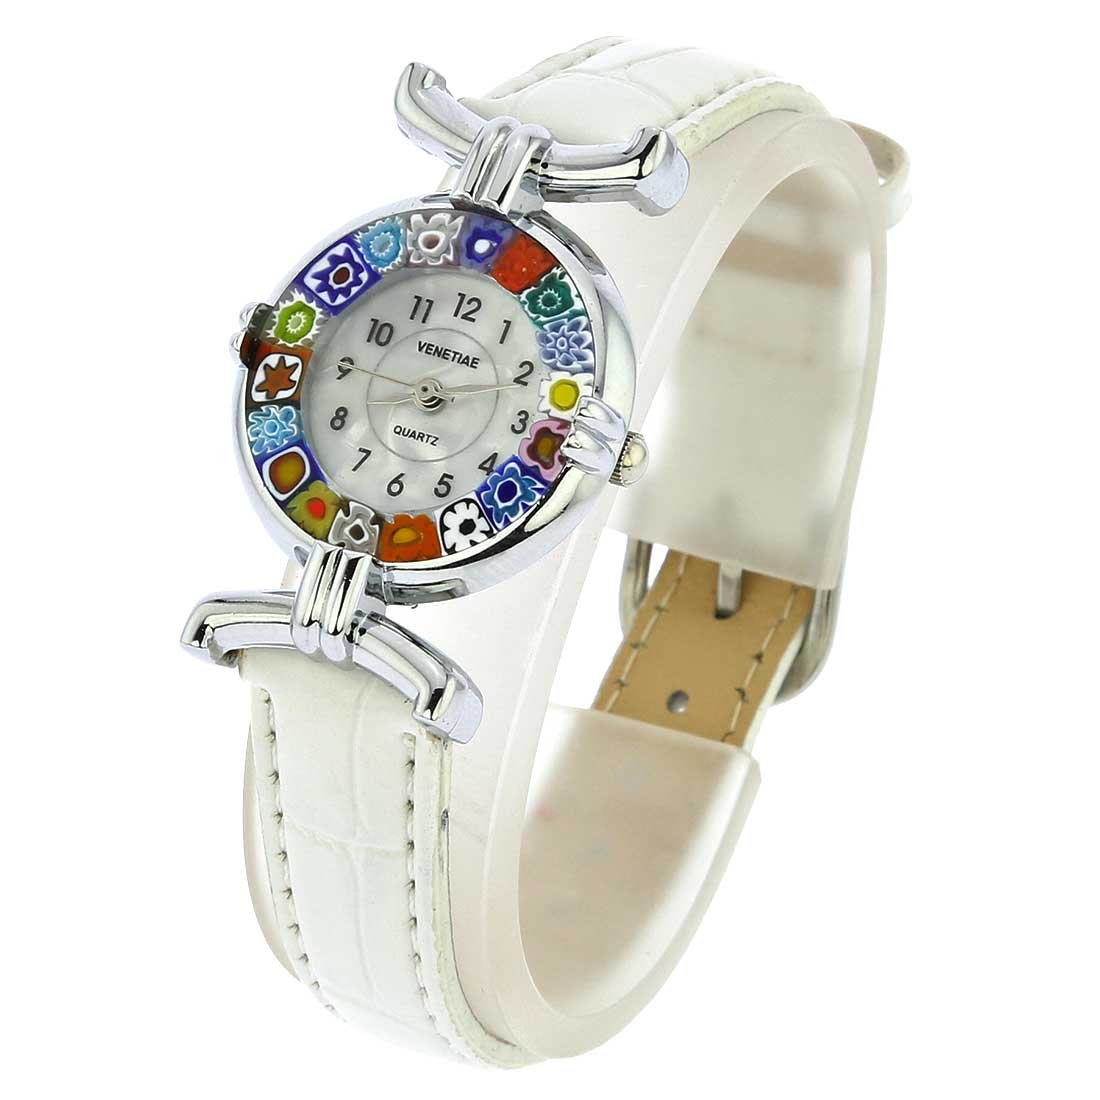 Amazon.com: GlassOfVenice Murano Glass Millefiori Watch with Leather Band - White: Watches